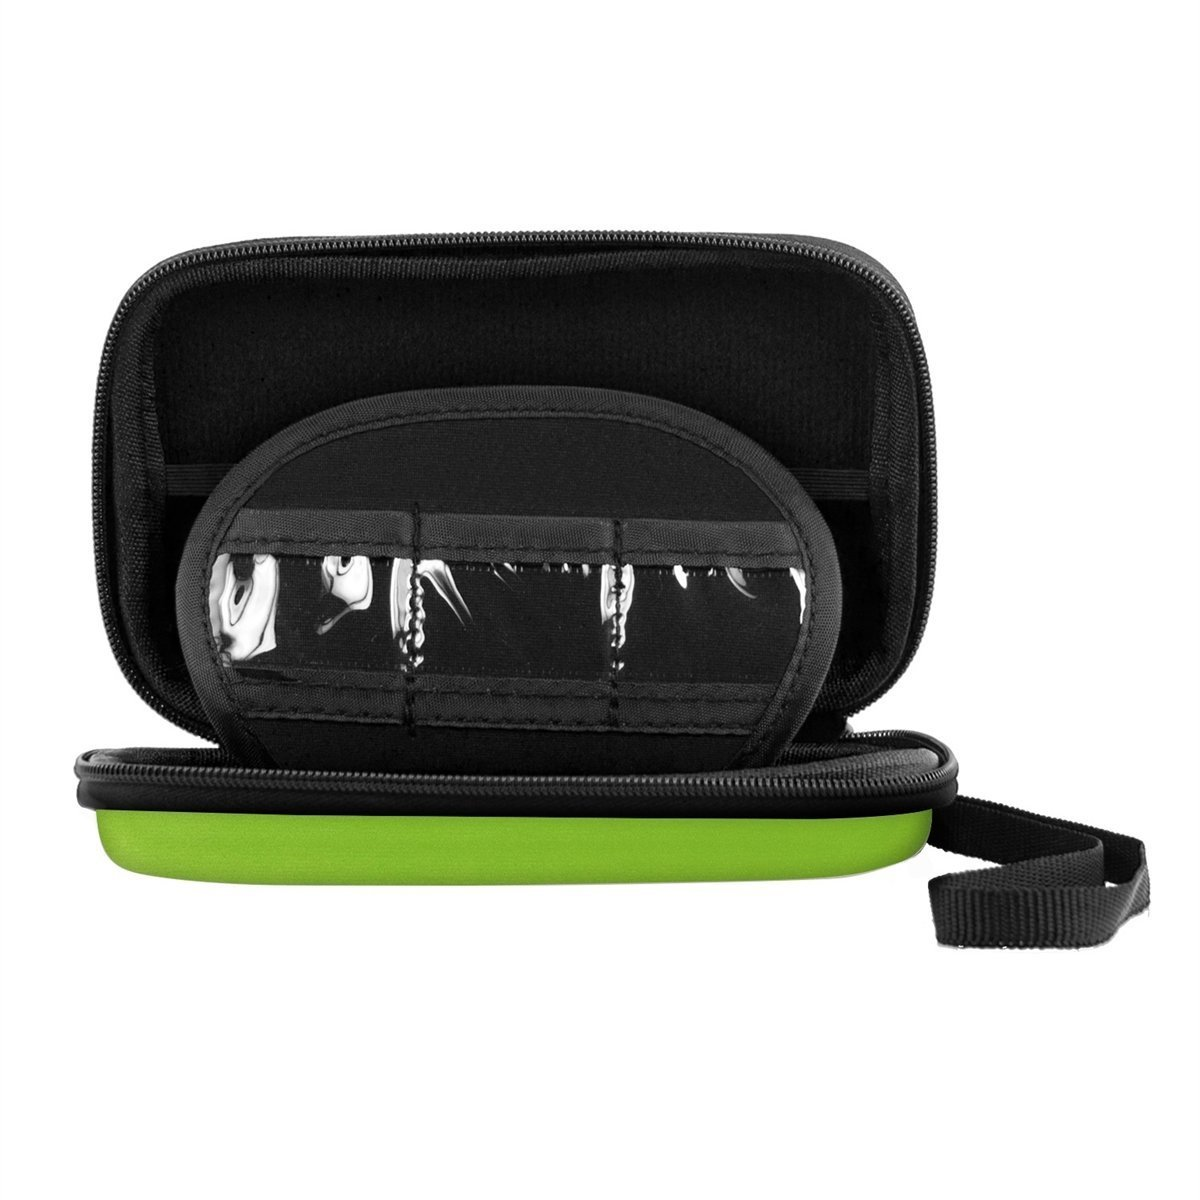 "CAA-Hot Carry Case Cover Pouch Bag for 2.5"" USB External Hard Disk Drive Protect Green"